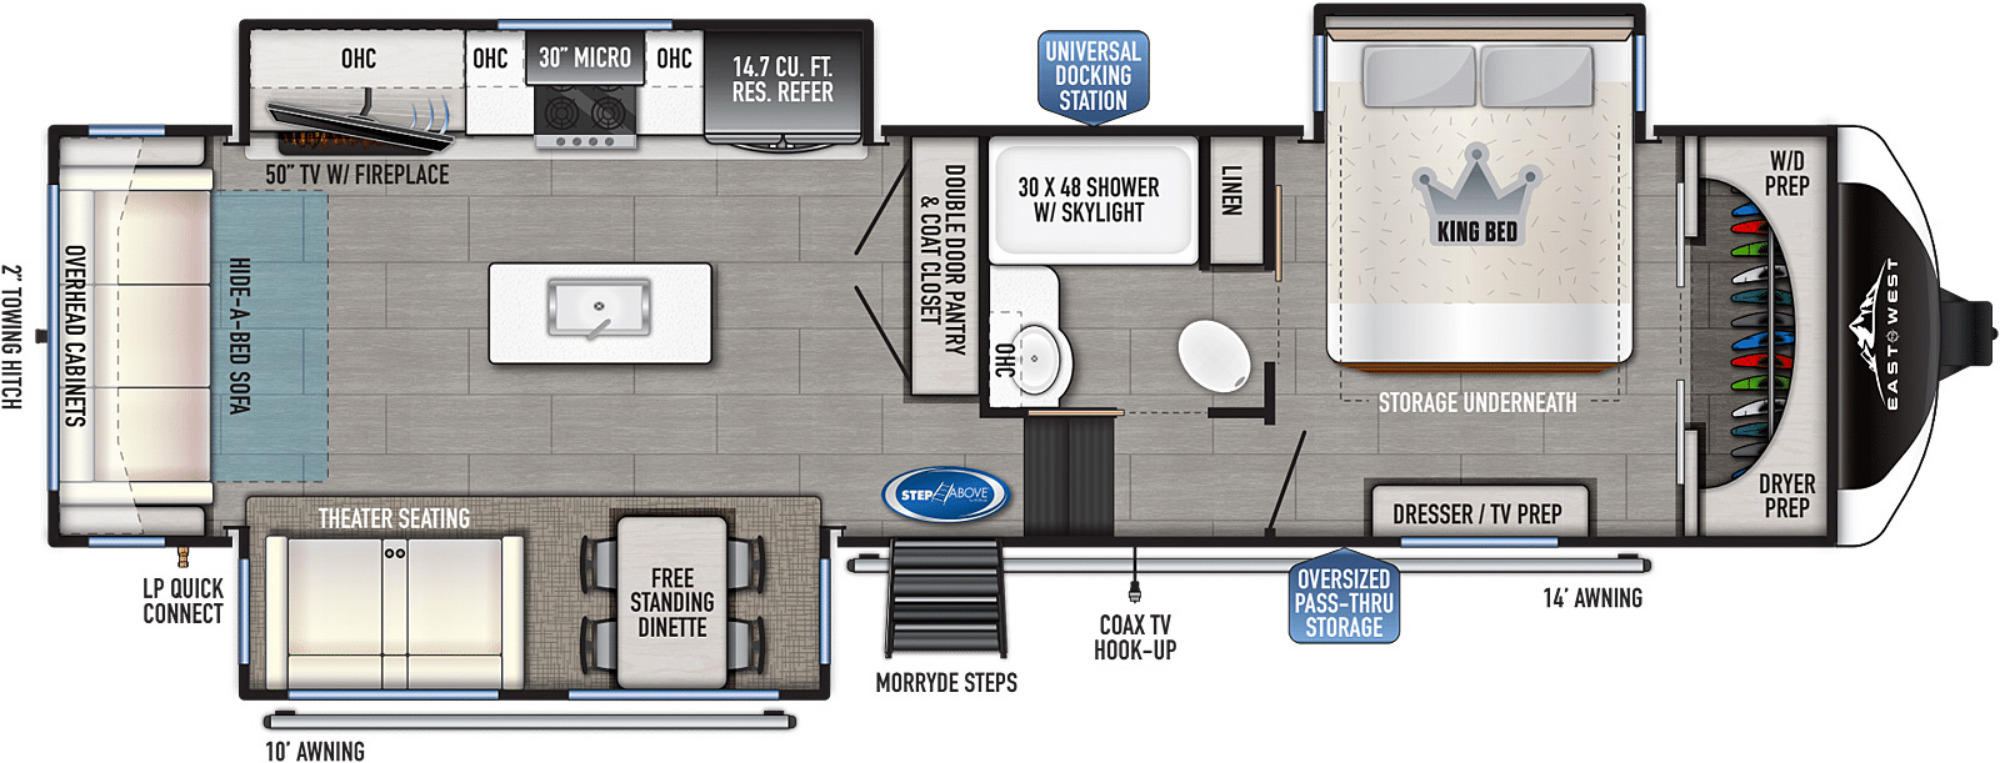 View Floor Plan for 2022 EAST TO WEST TANDARA 320RL